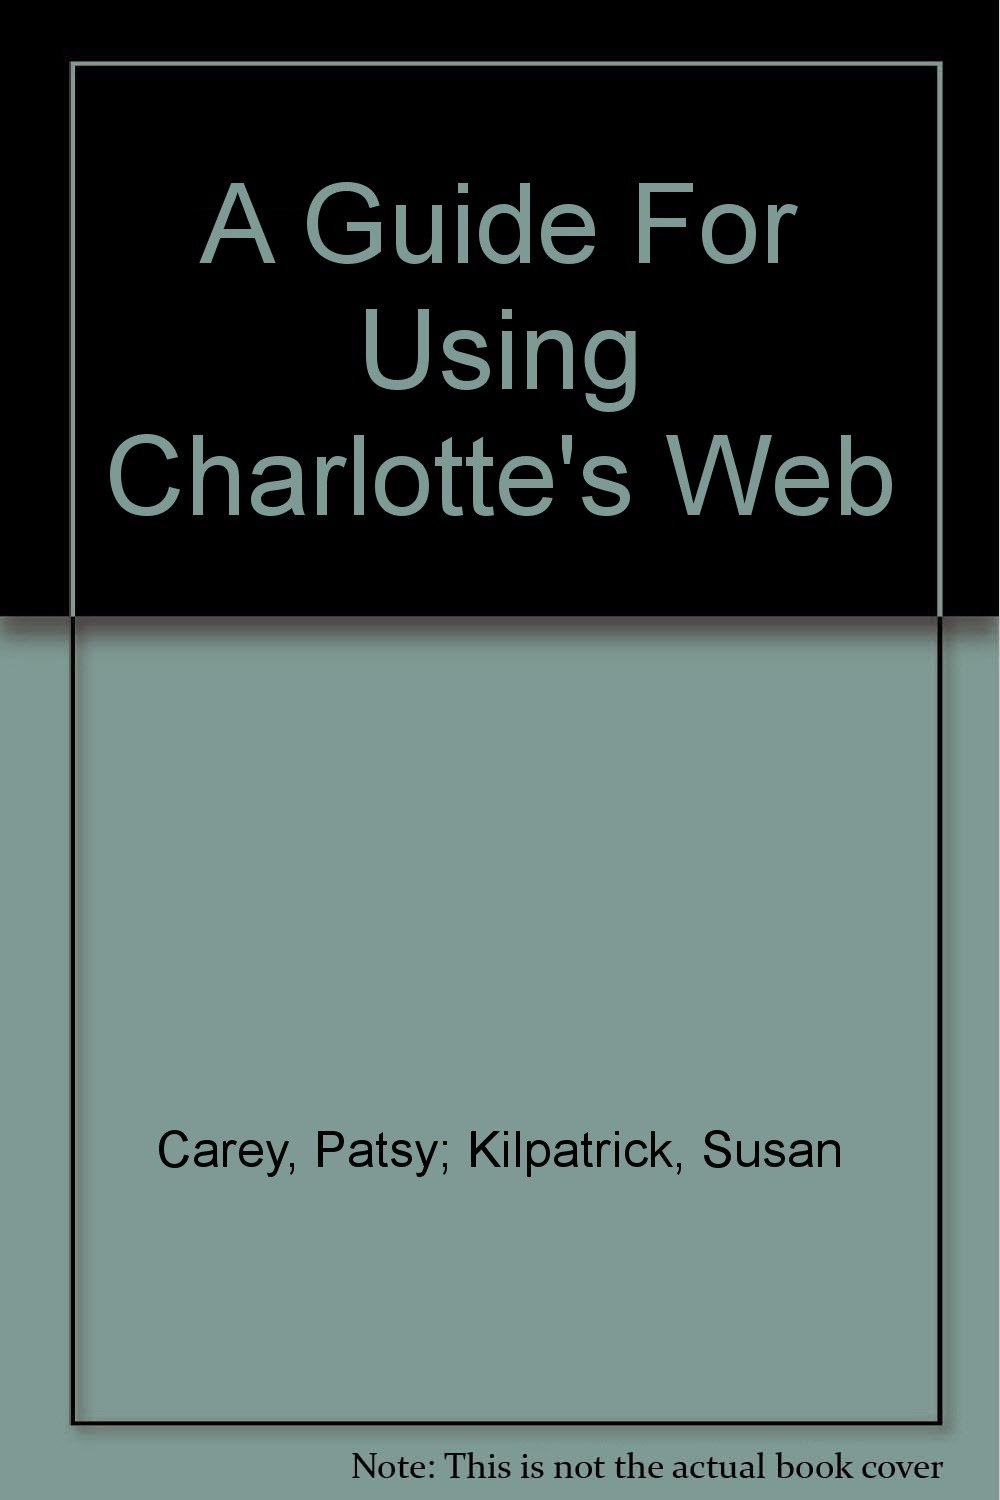 A Guide for Using Charlottes Web in the Classroom